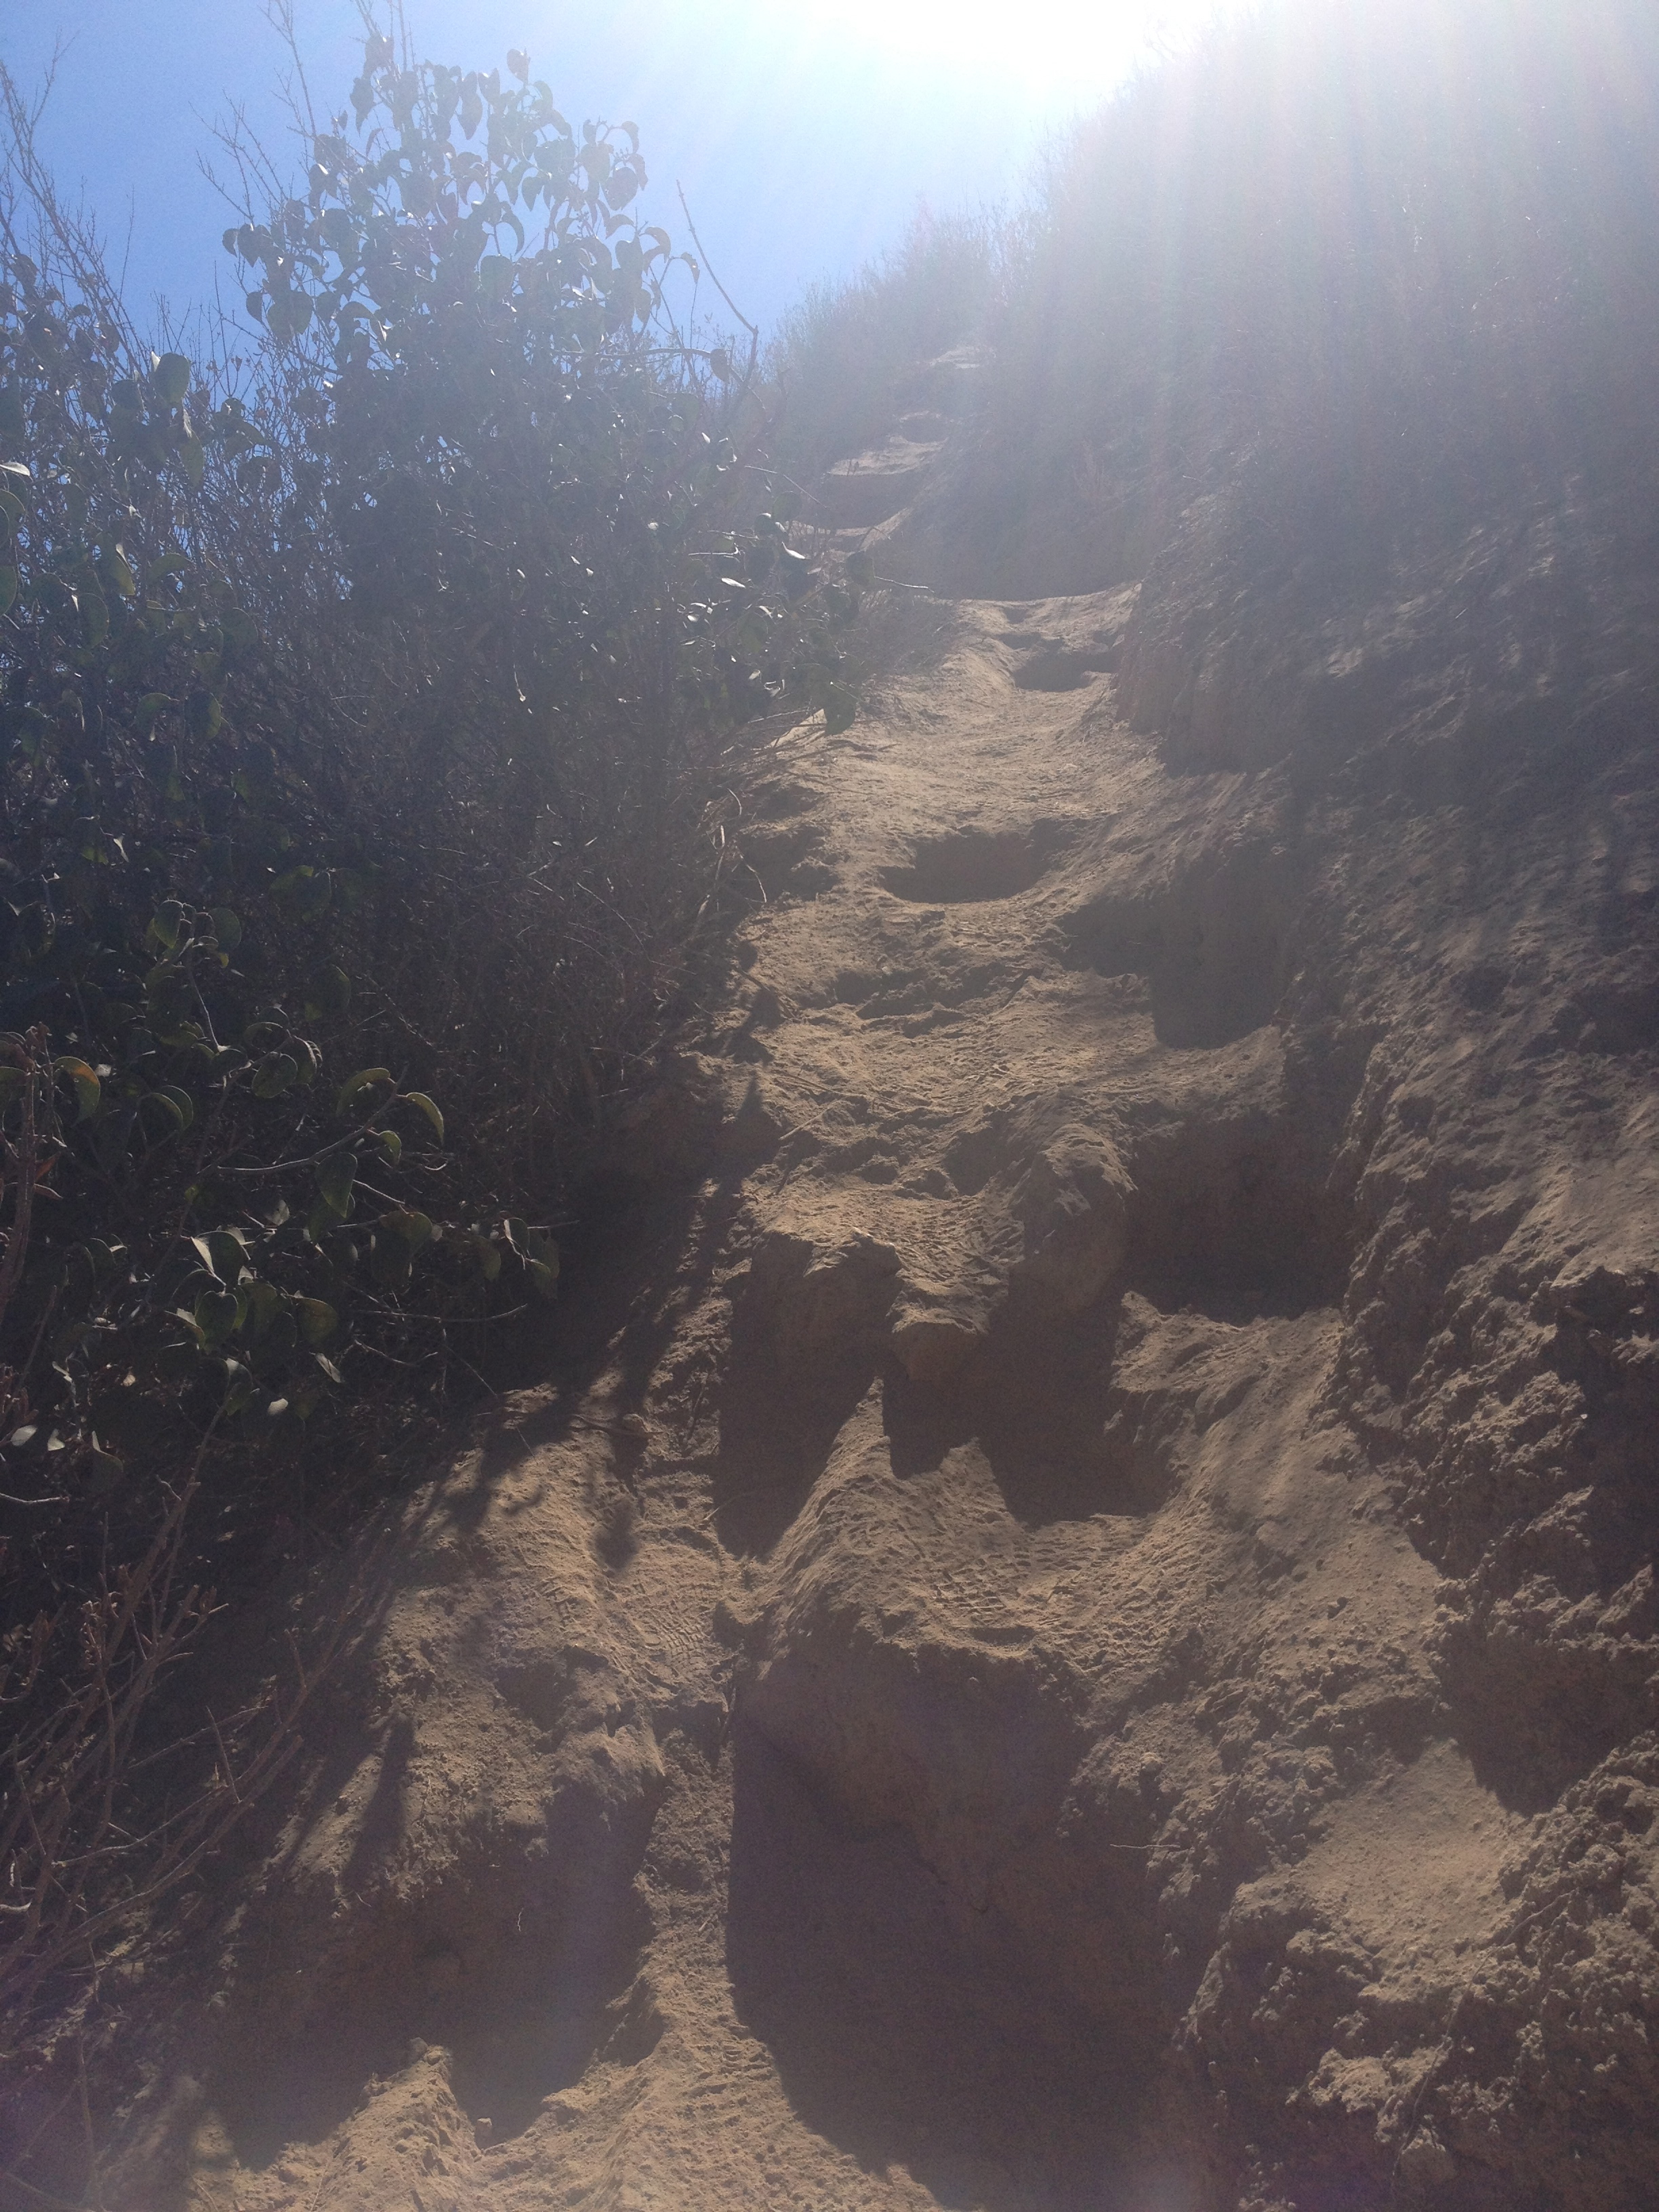 one of the trails that I did in the middle of the night (and in the heat)- super steep, super narrow. like mountain goats climbing.